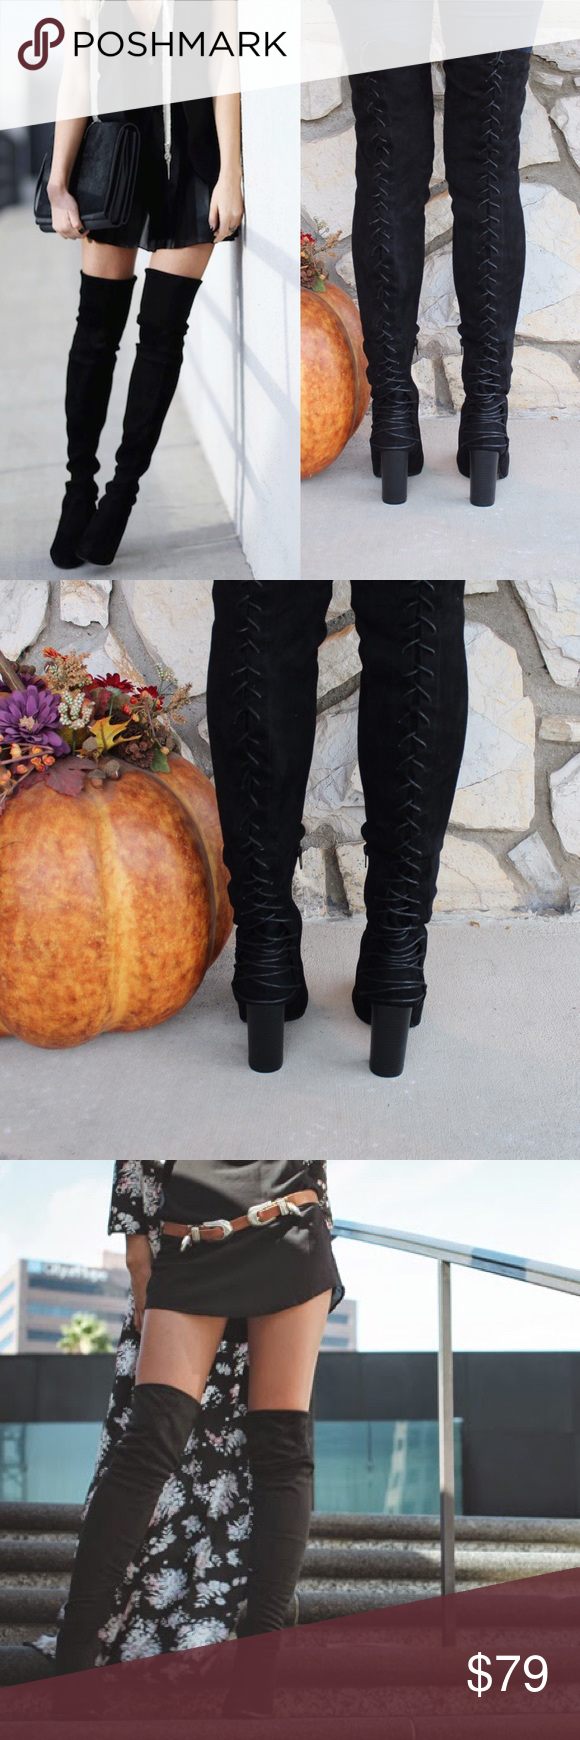 Tight Stretch Lace Up Over Knee Thigh High Boot ⛄️JUST ARRIVED!⛄️Upgrade your simple boots for a subtle and flirty new look!⛄️ Brand New in Box ⛄️All vegan materials ⛄️ 3.25 inch heel ⛄️ Boot is 23 inches tall/26.25 inches tall including the heel ⛄️ 🔴Limited Quantities 🔴 Feel free to ask questions! Shoes Over the Knee Boots